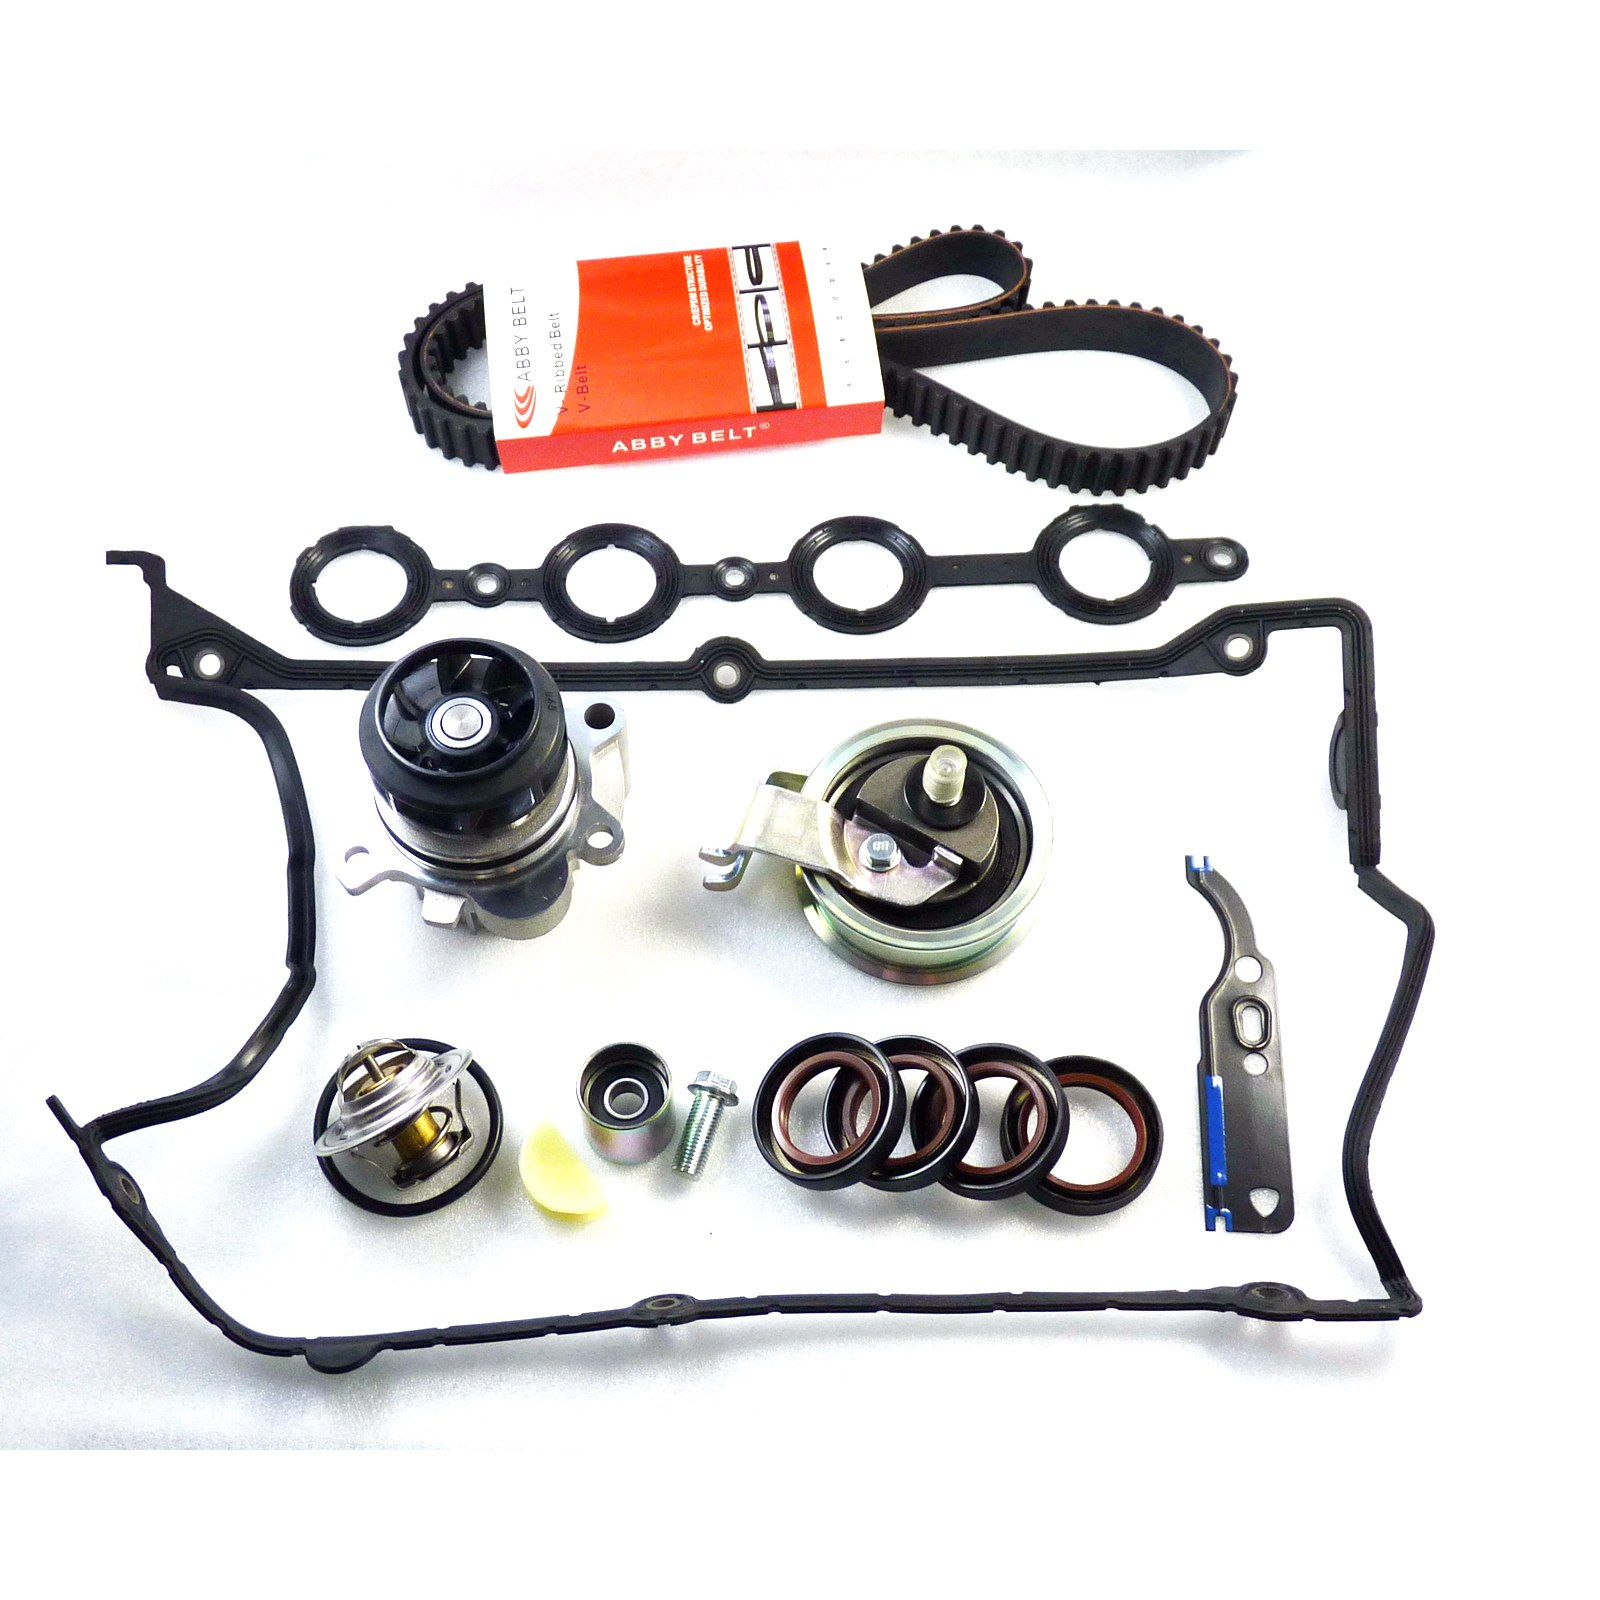 For Audi Vw 18t Timing Belt Water Pump Valve Cover Gasket Jetta 1 8t Thermostat Kit New